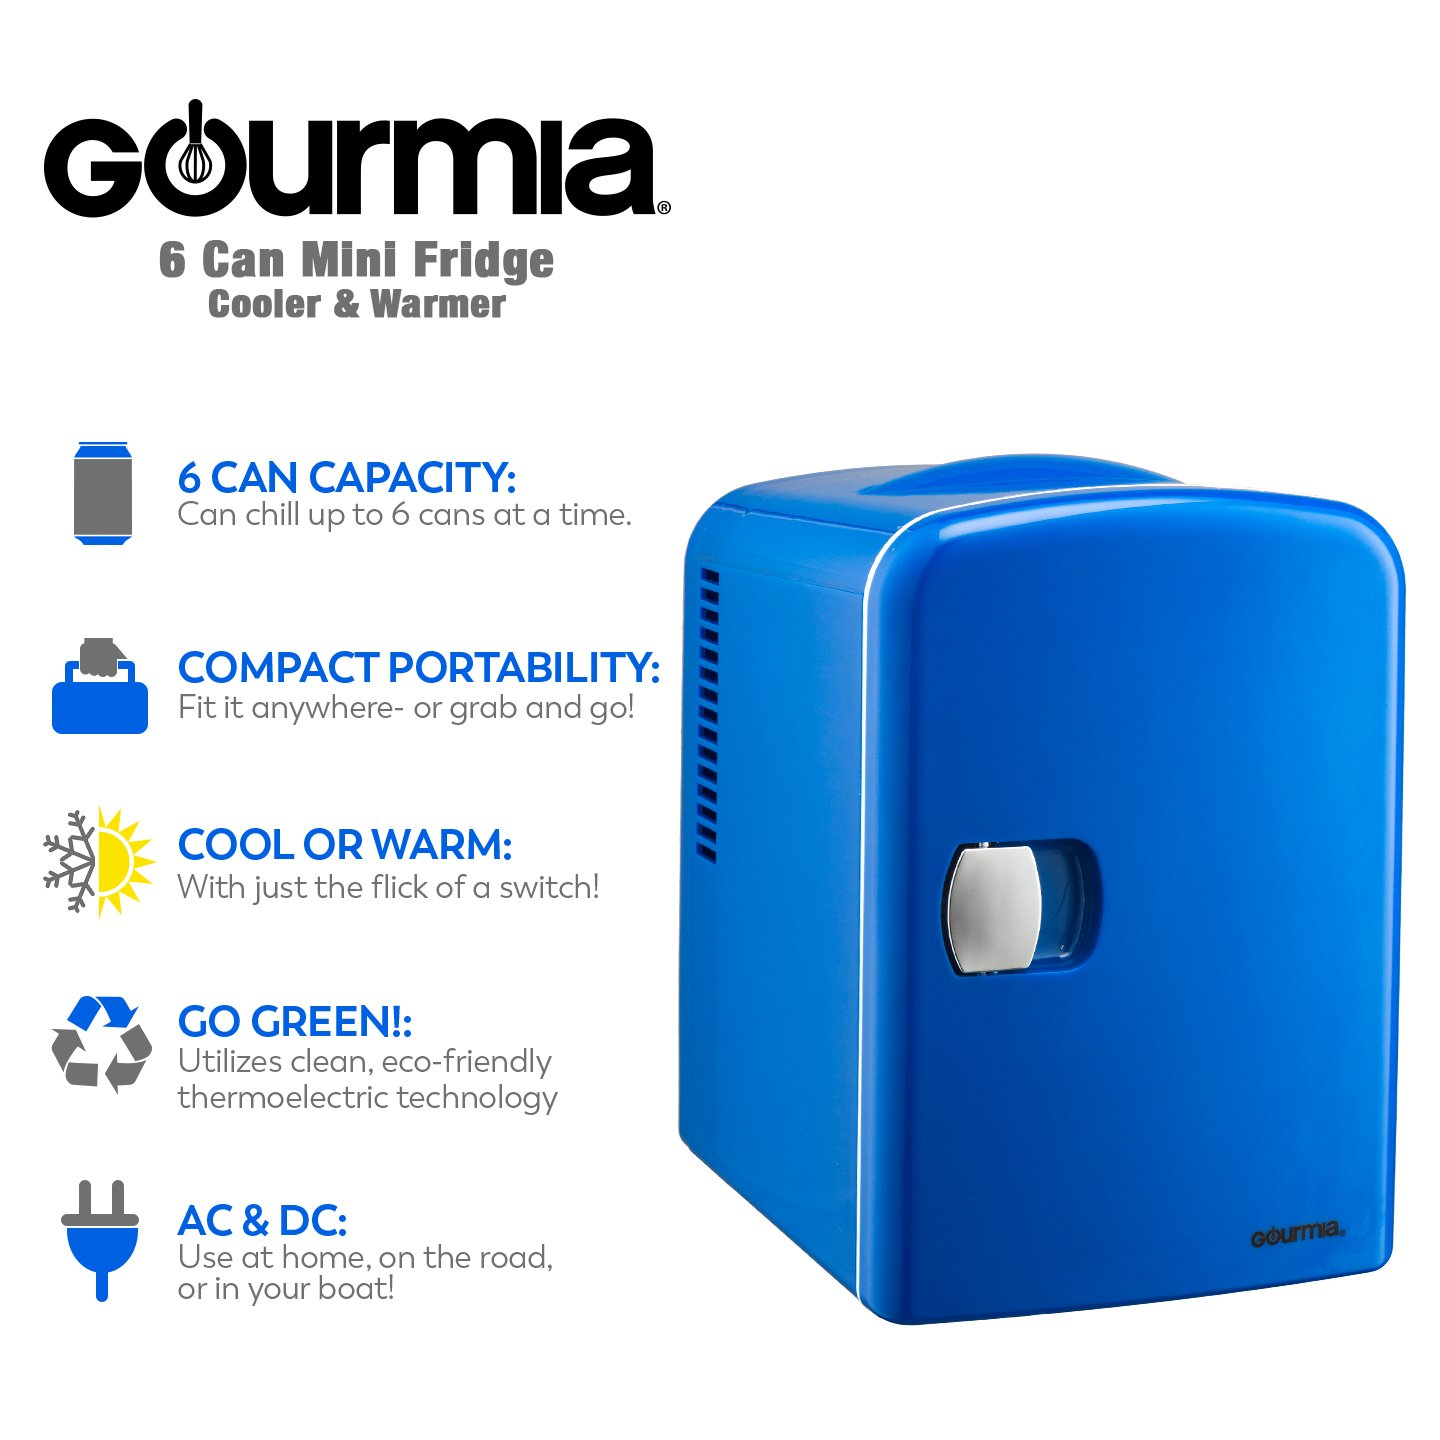 Amazon.com: Gourmia GMF-600B Portable 6 Can Mini Fridge Cooler & Warmer, Blue: Kitchen & Dining